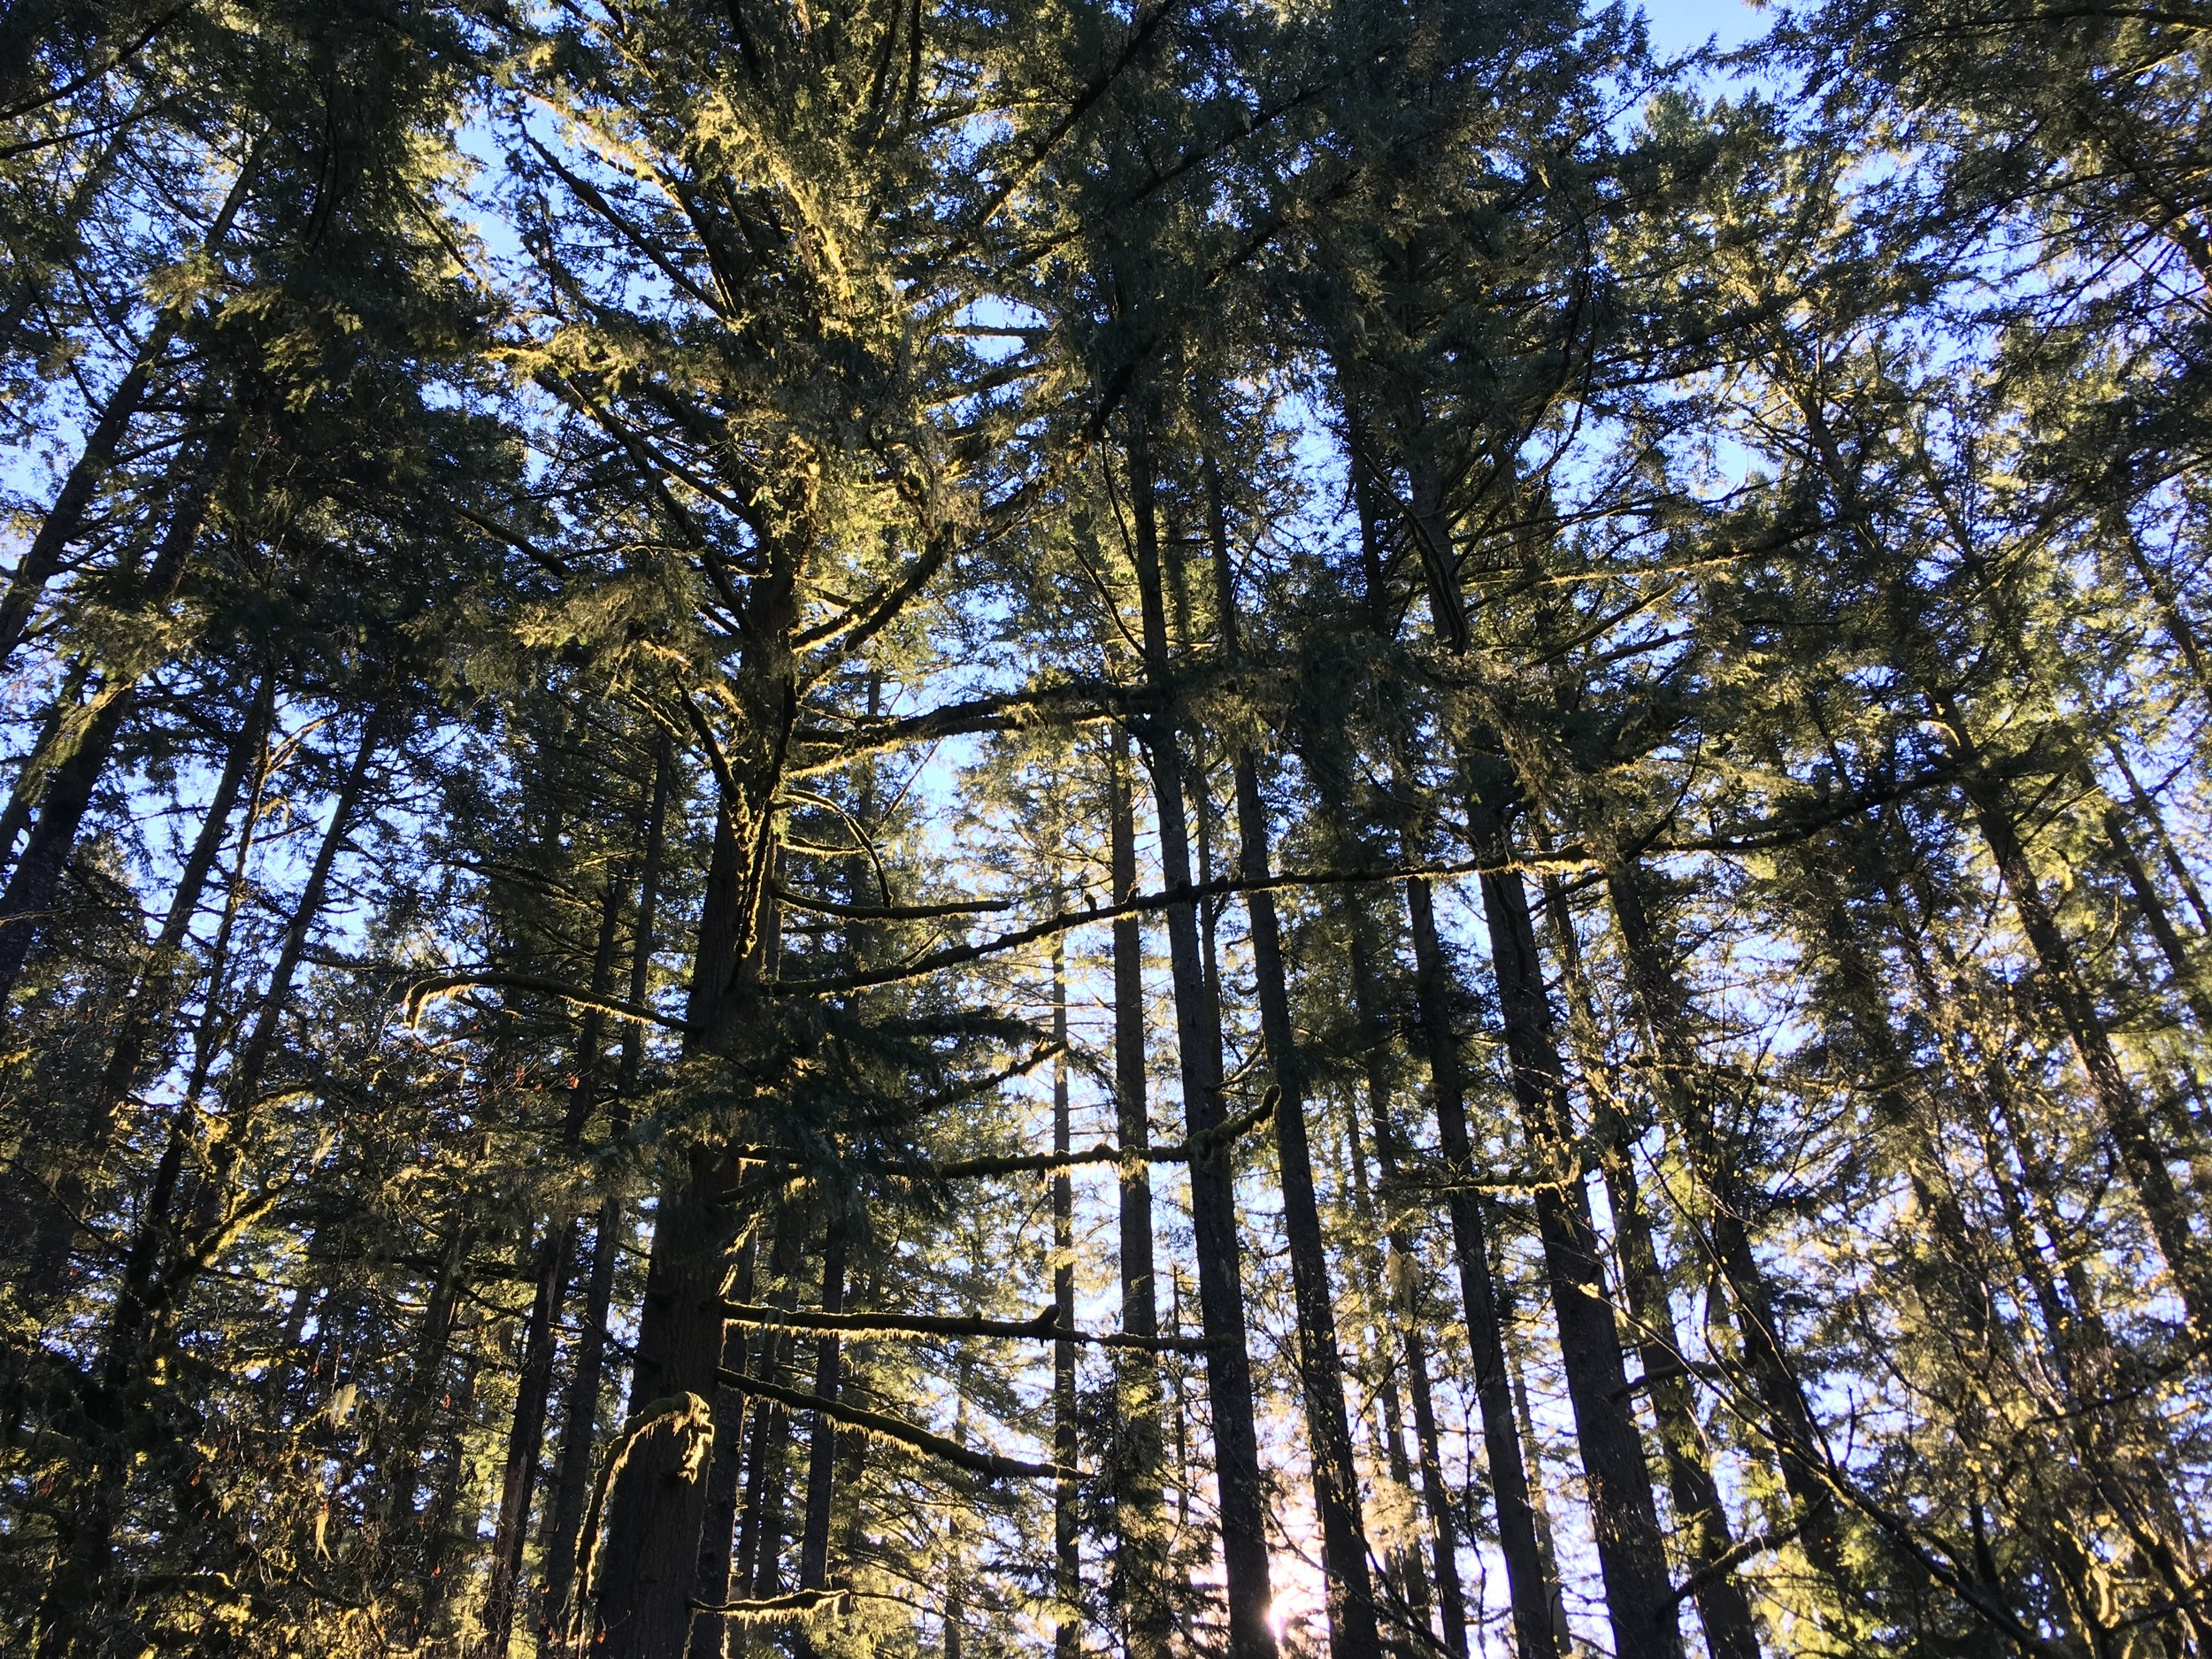 Tale of a Tall Tree    Learn all about our state tree! This interactive program illustrates how important the Douglas-fir tree is to Oregon's ecology!